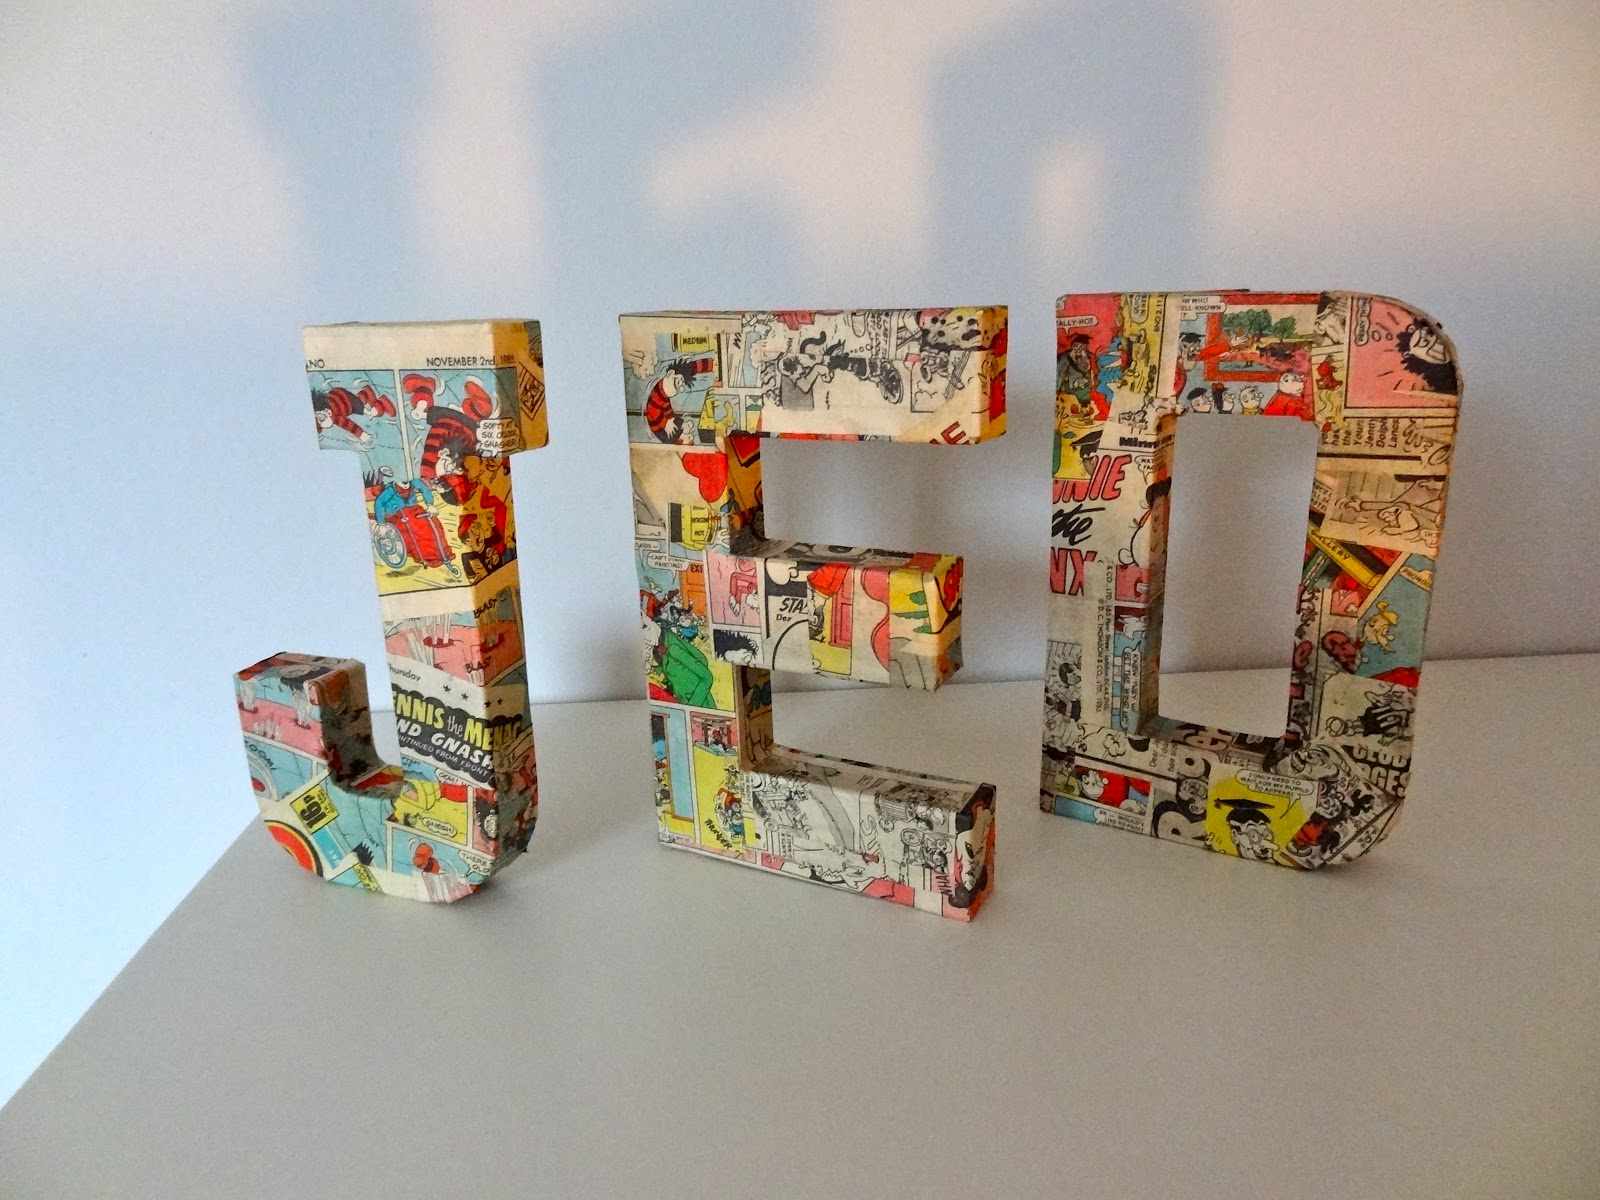 yewman projects blogs dogs frogs books 3d paper mache letters